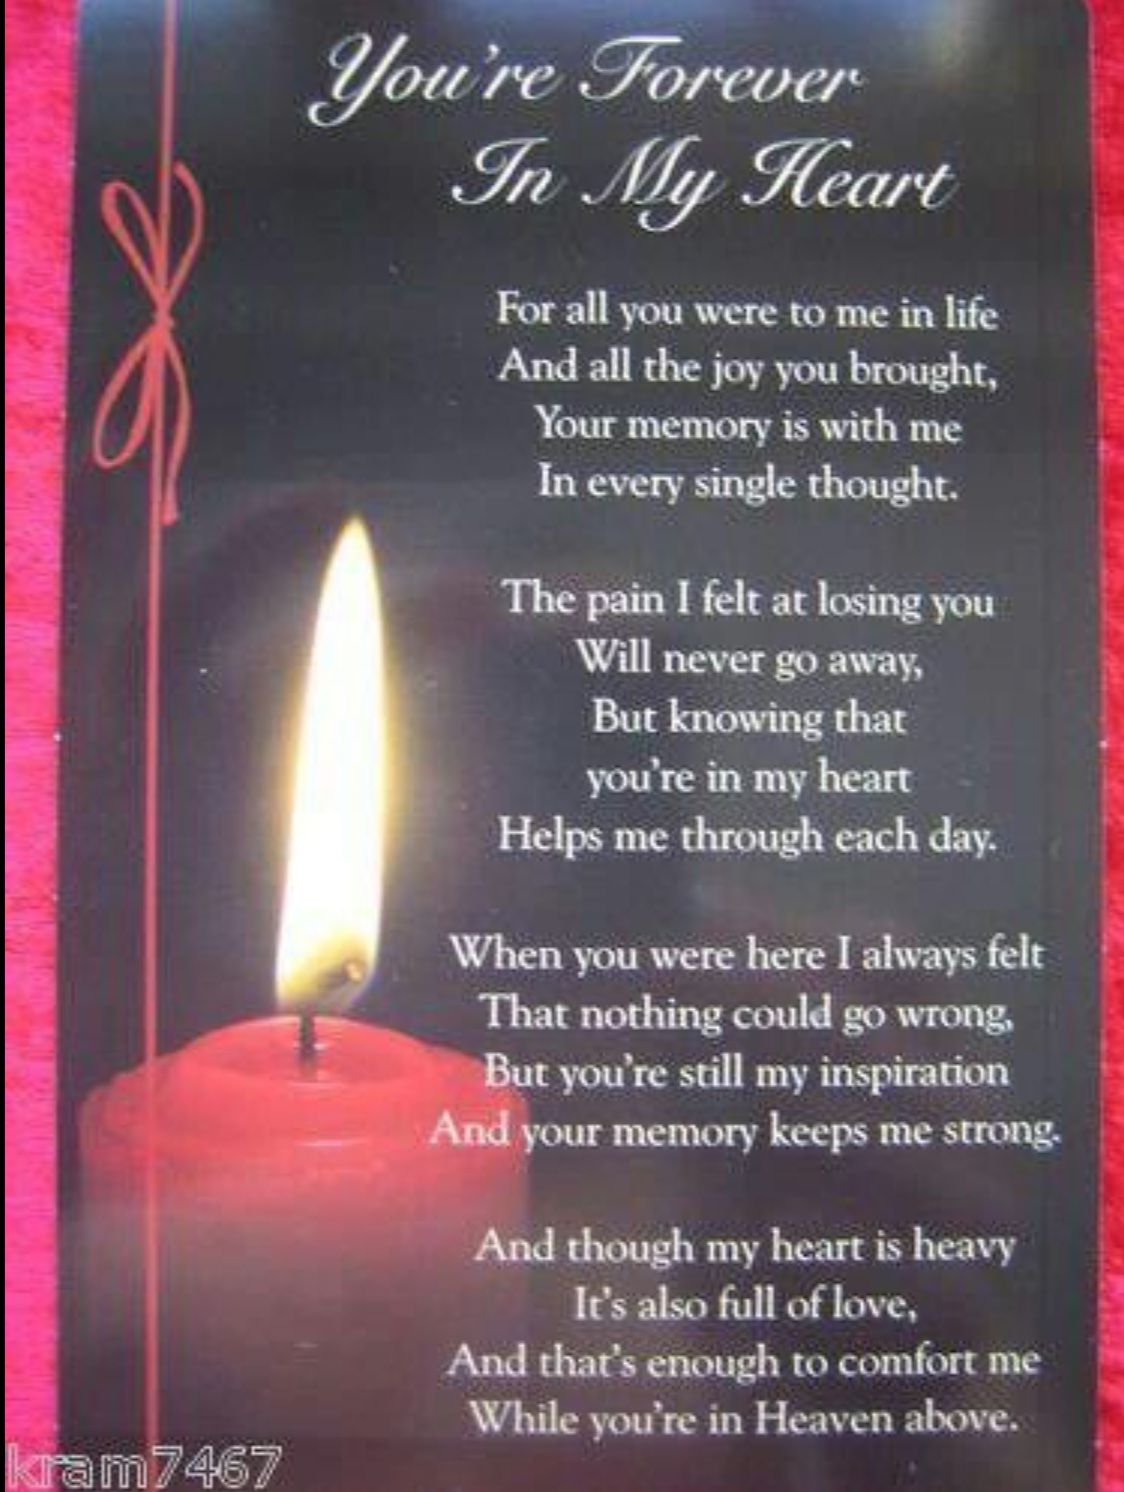 Pin by Penny Whary on Memorials Mom in heaven